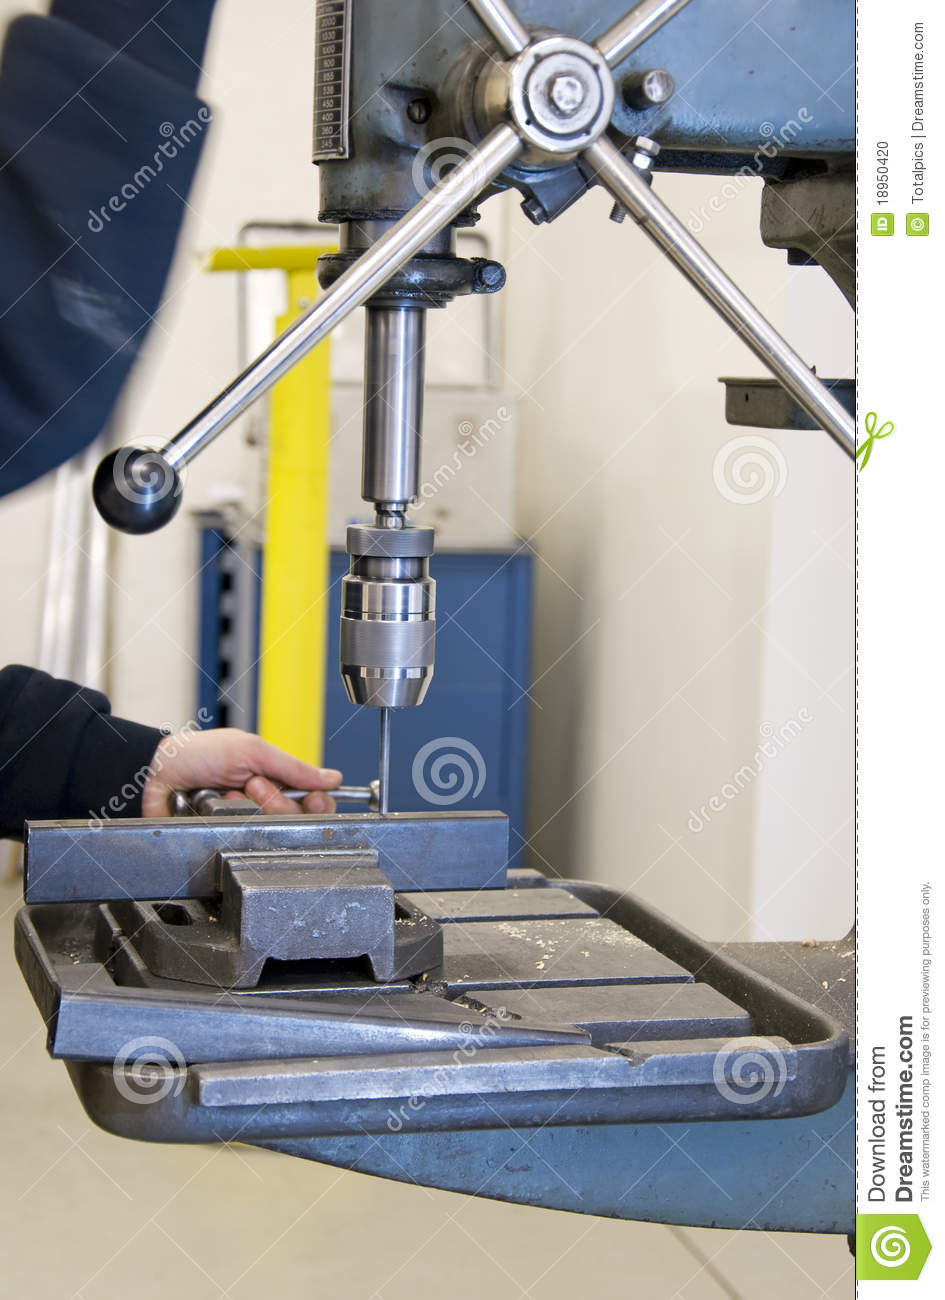 how to become a metal worker